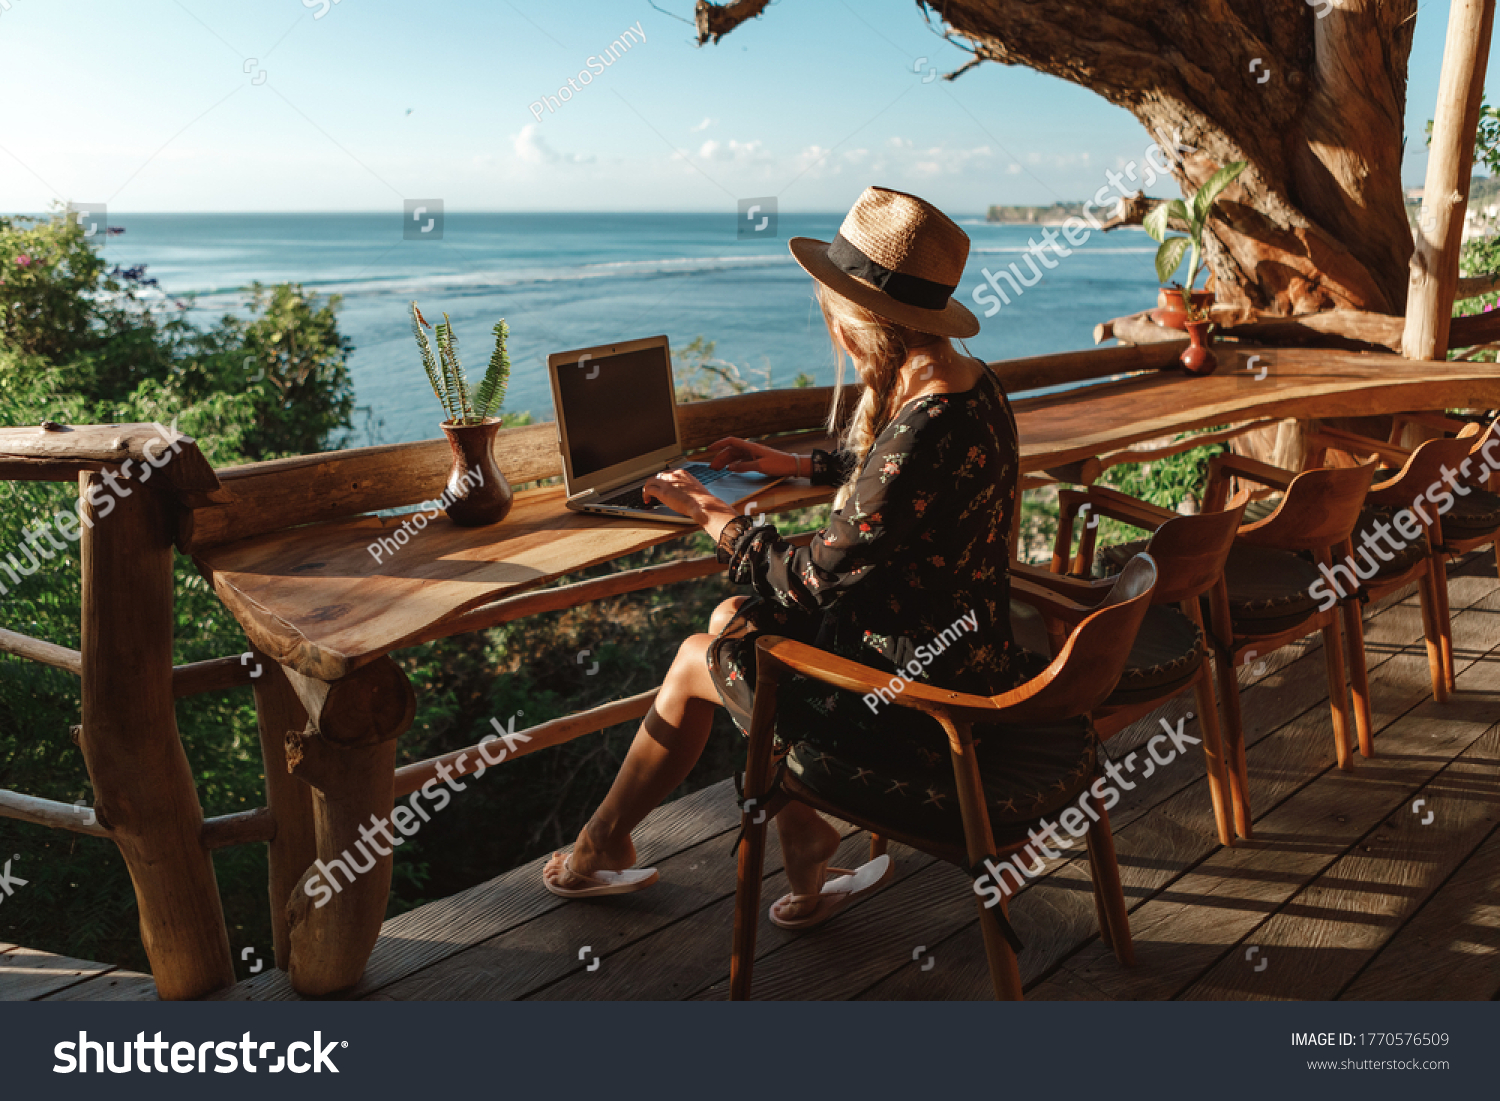 Freelance concept. Pretty young woman using laptop in cafe on tropical beach in outdoor cafe terrace with sea view. Work and travel #1770576509